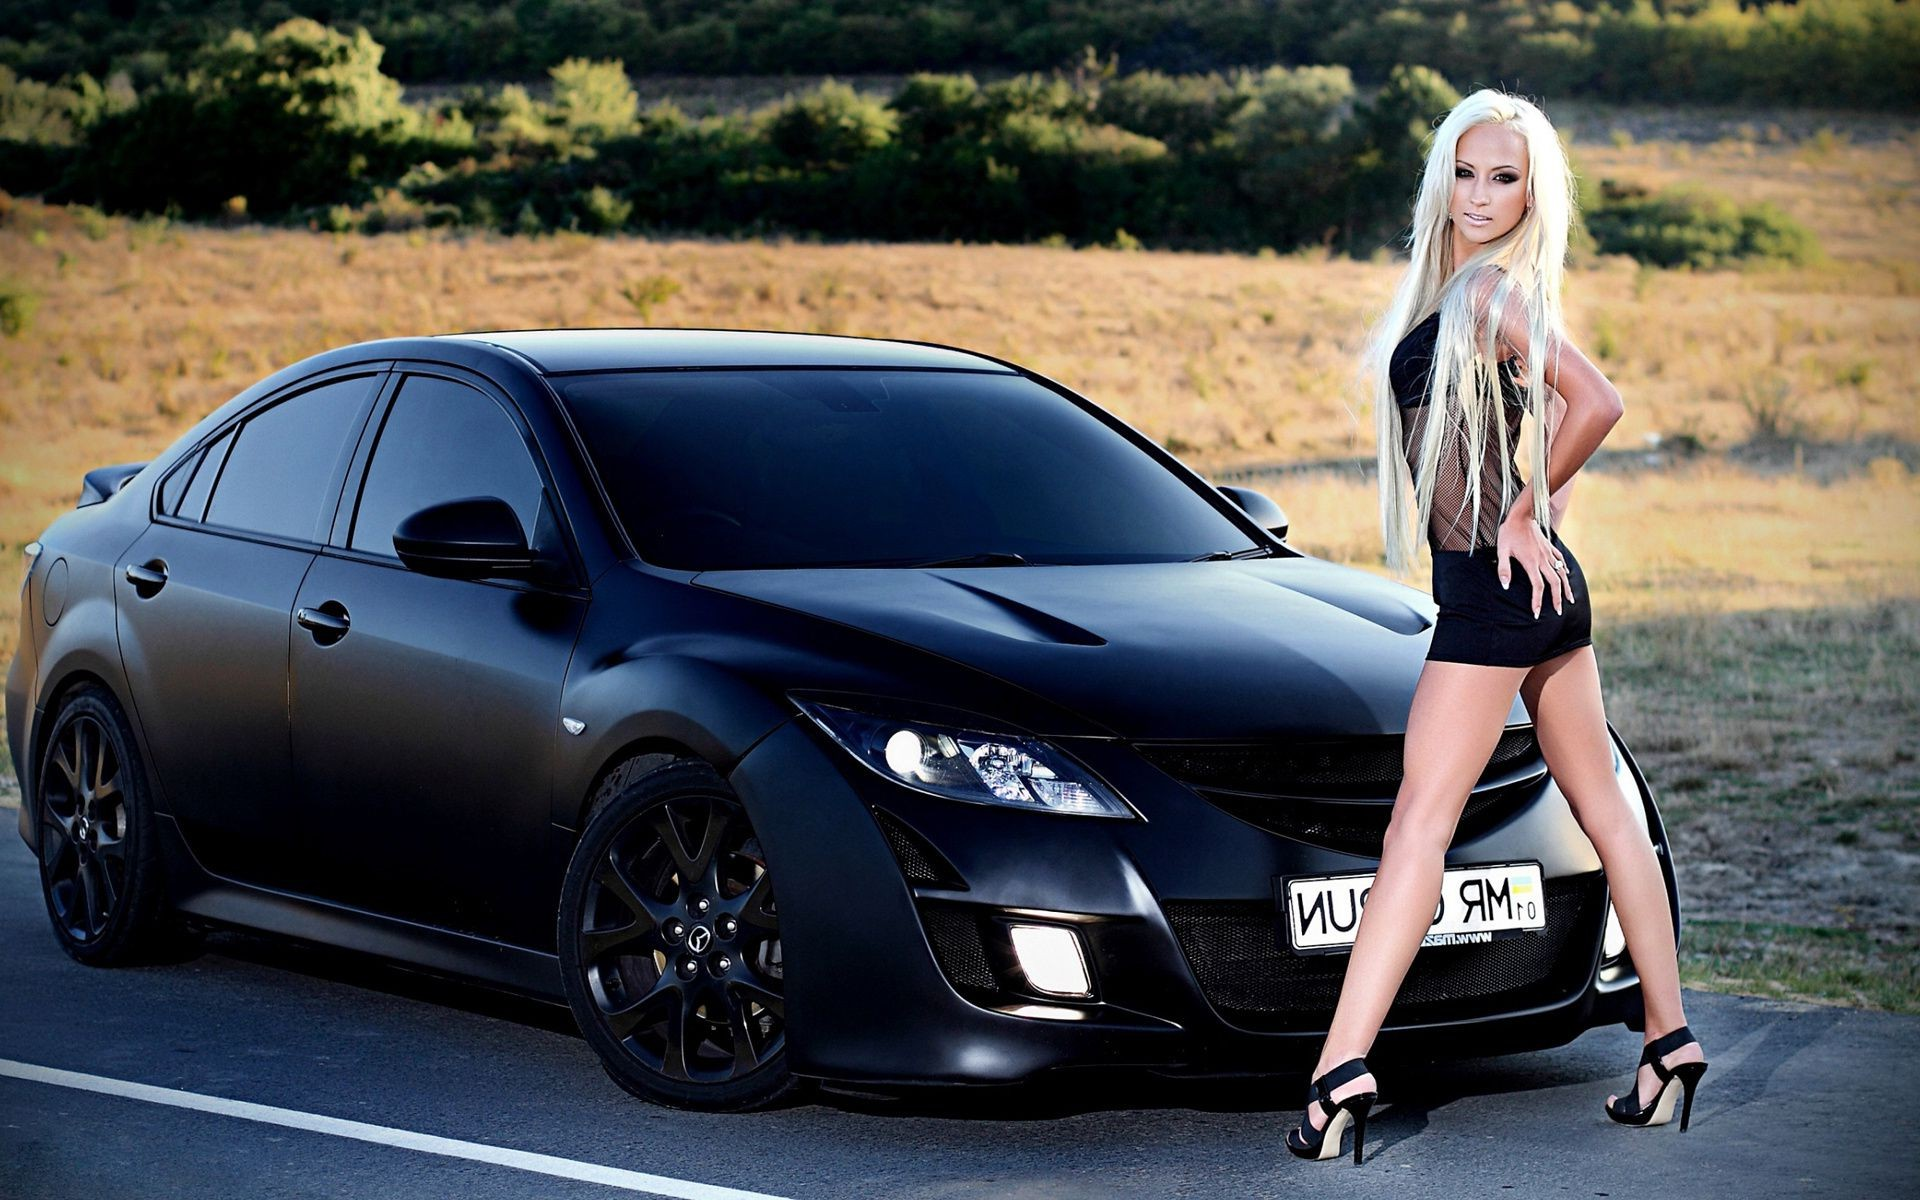 cars and girls woman fashion car girl model sexy portrait vehicle outdoors